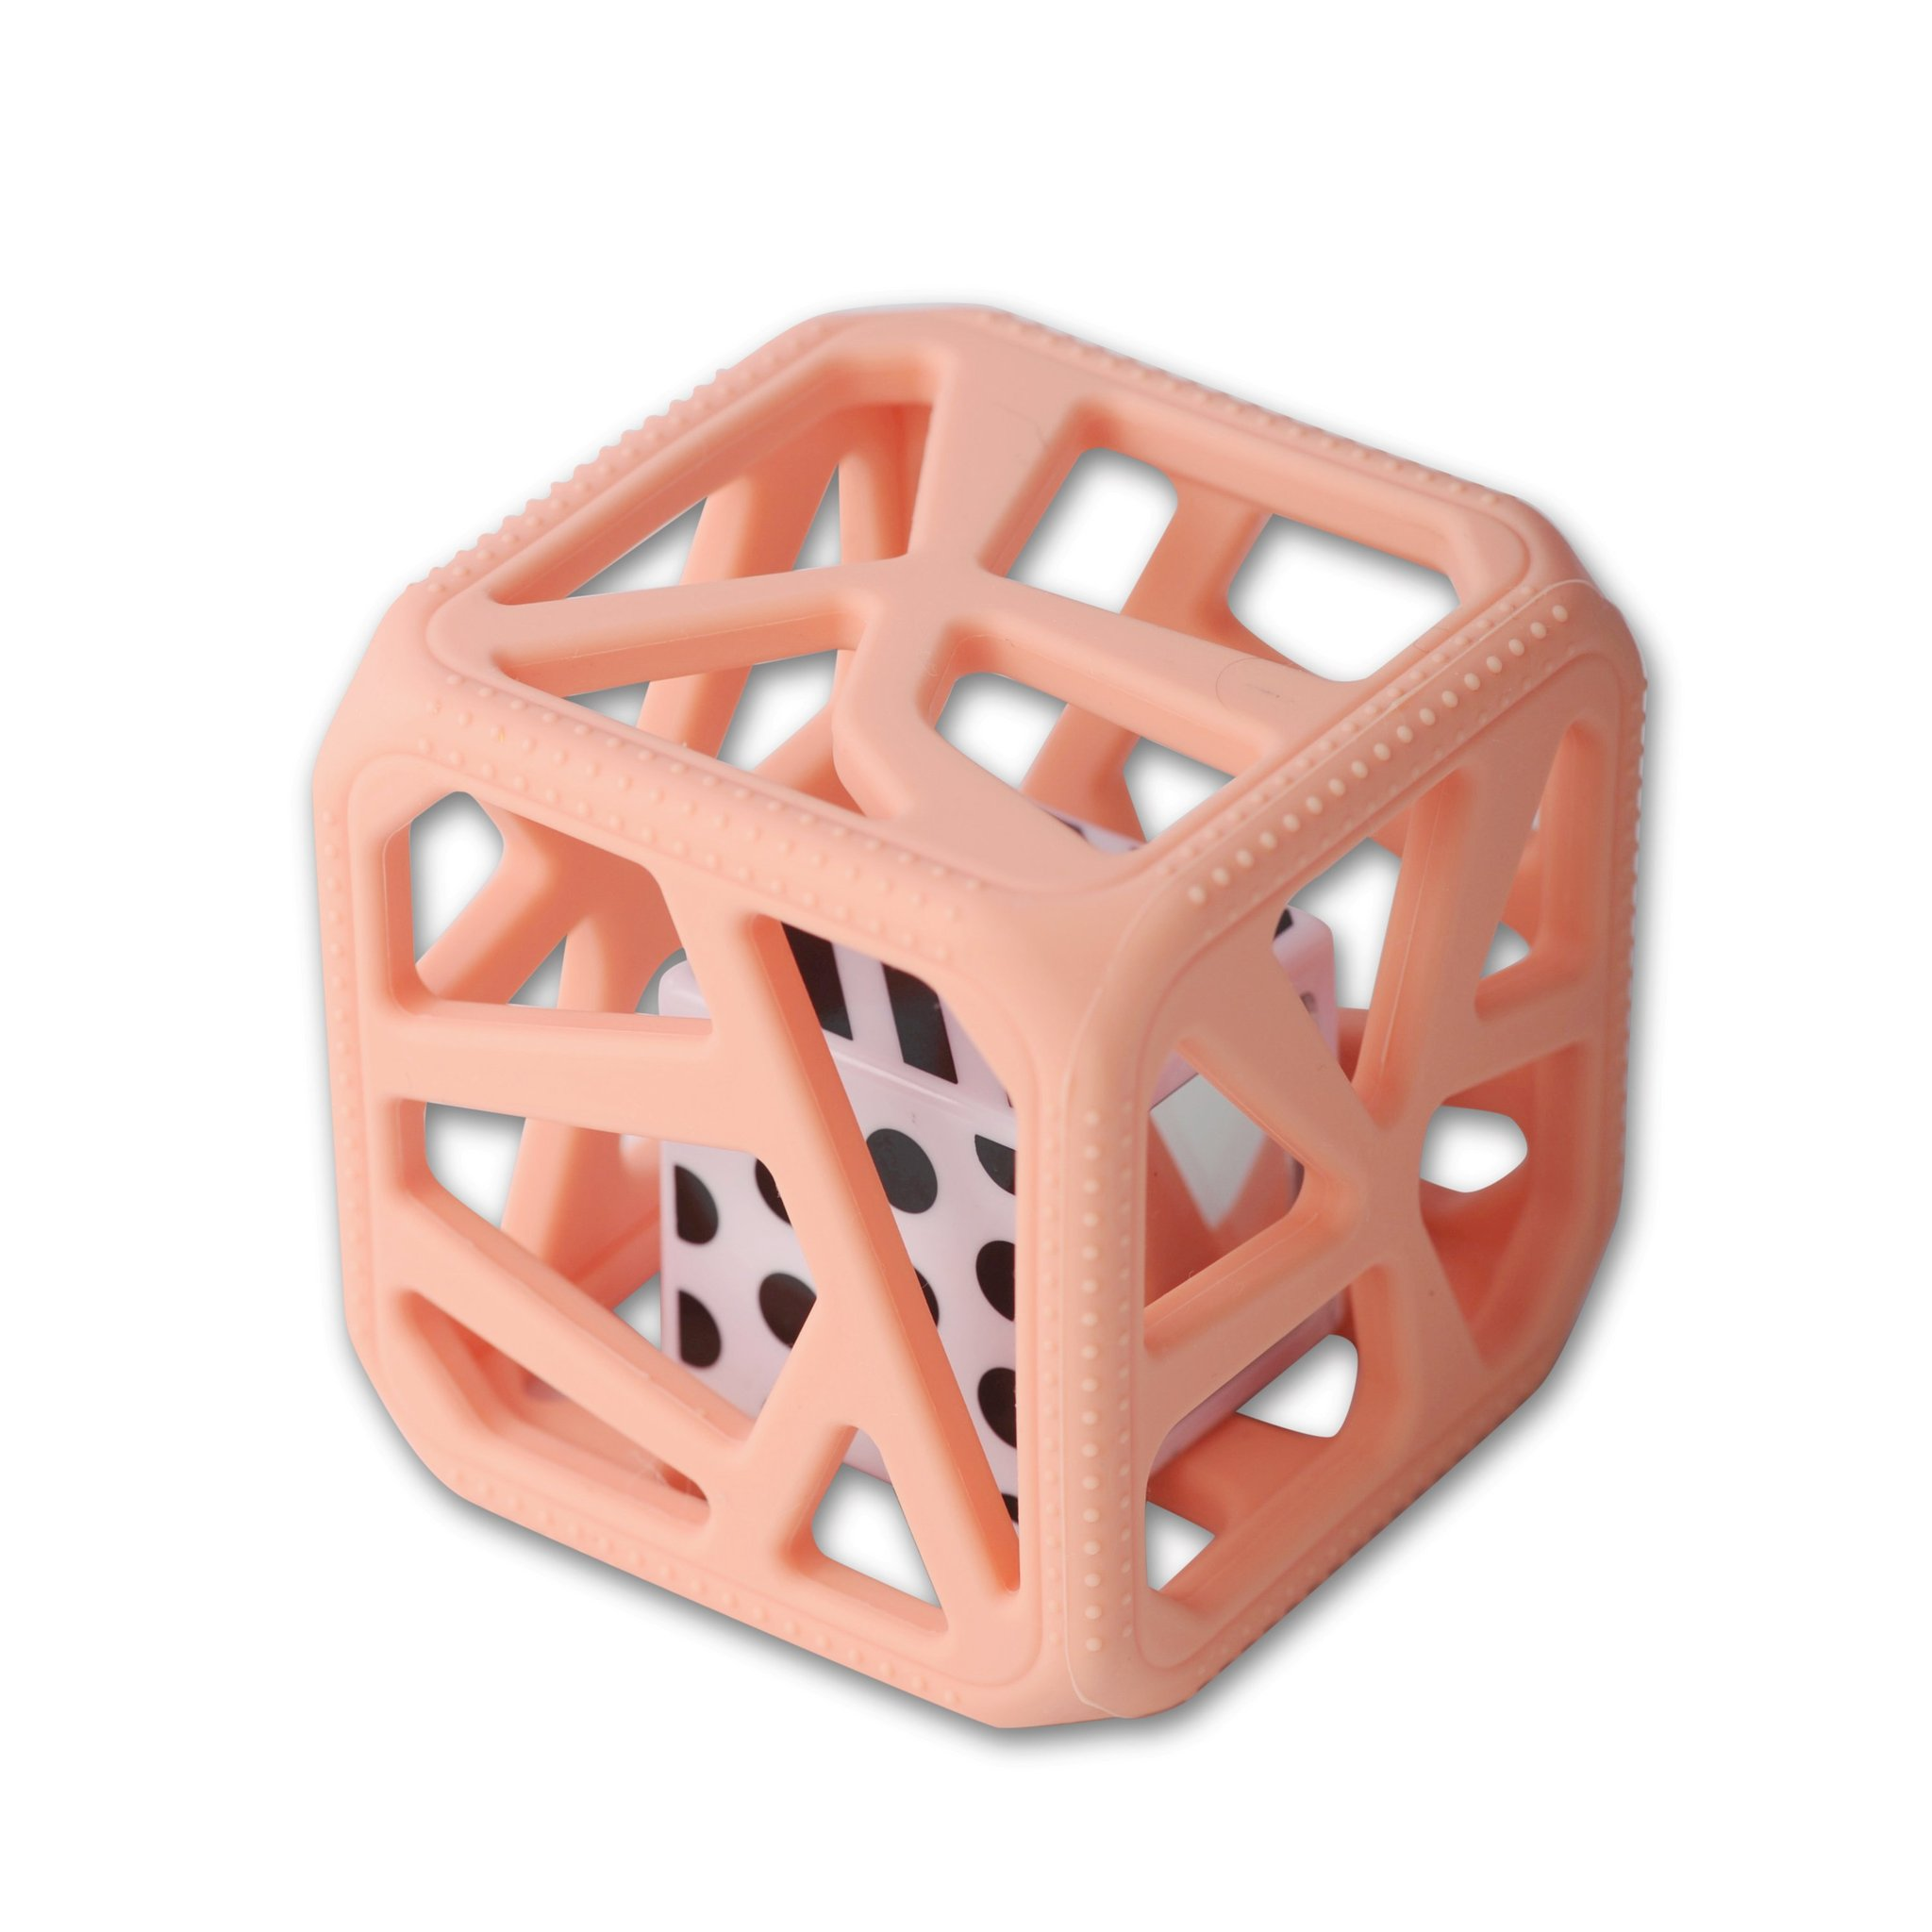 Chew Cube | Peachy Pink